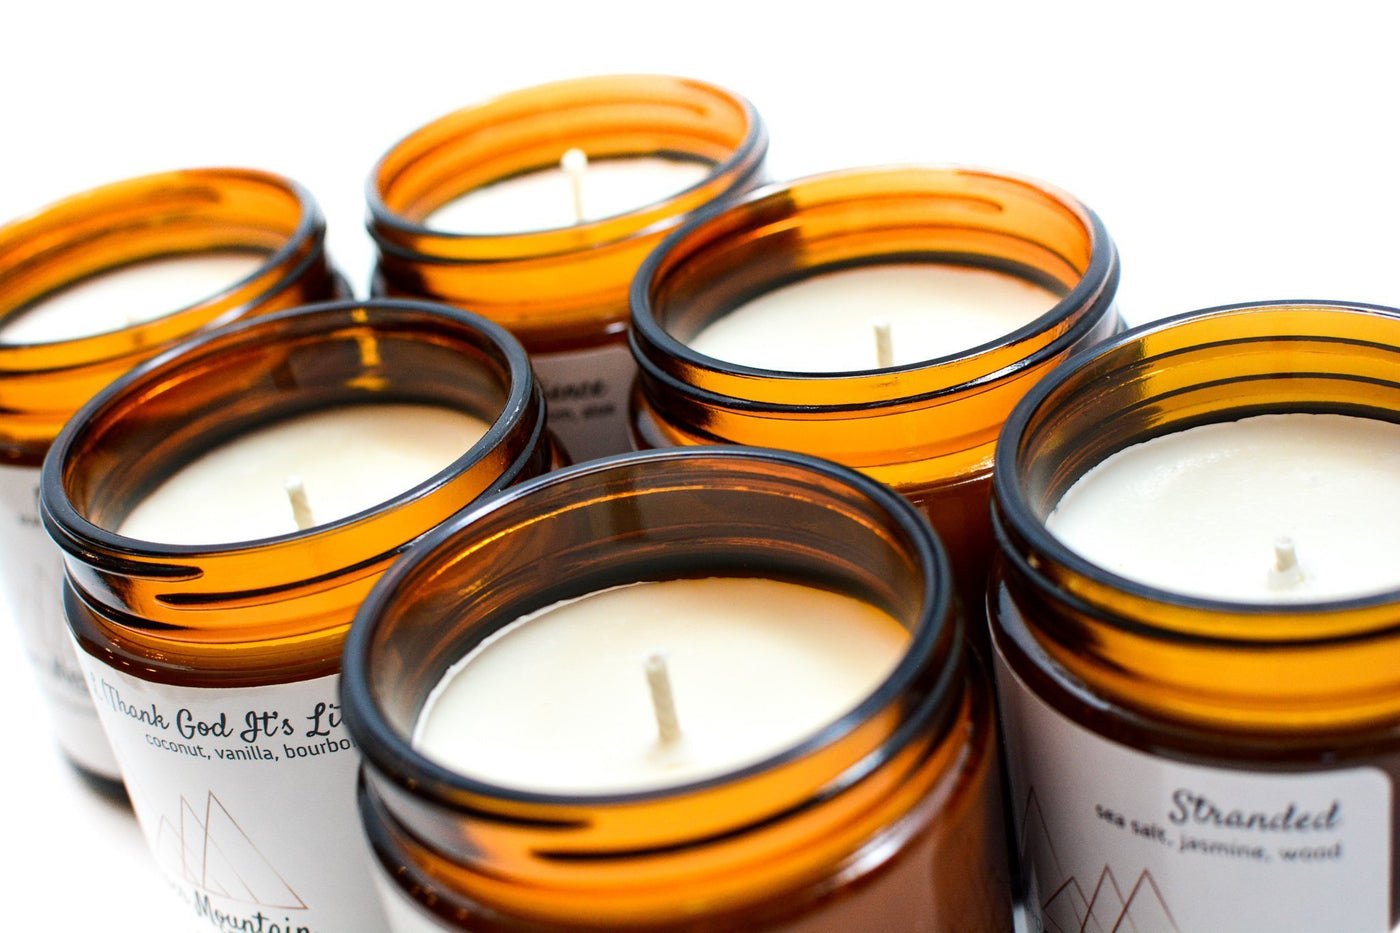 Candles | Copper Mountain Candle Company